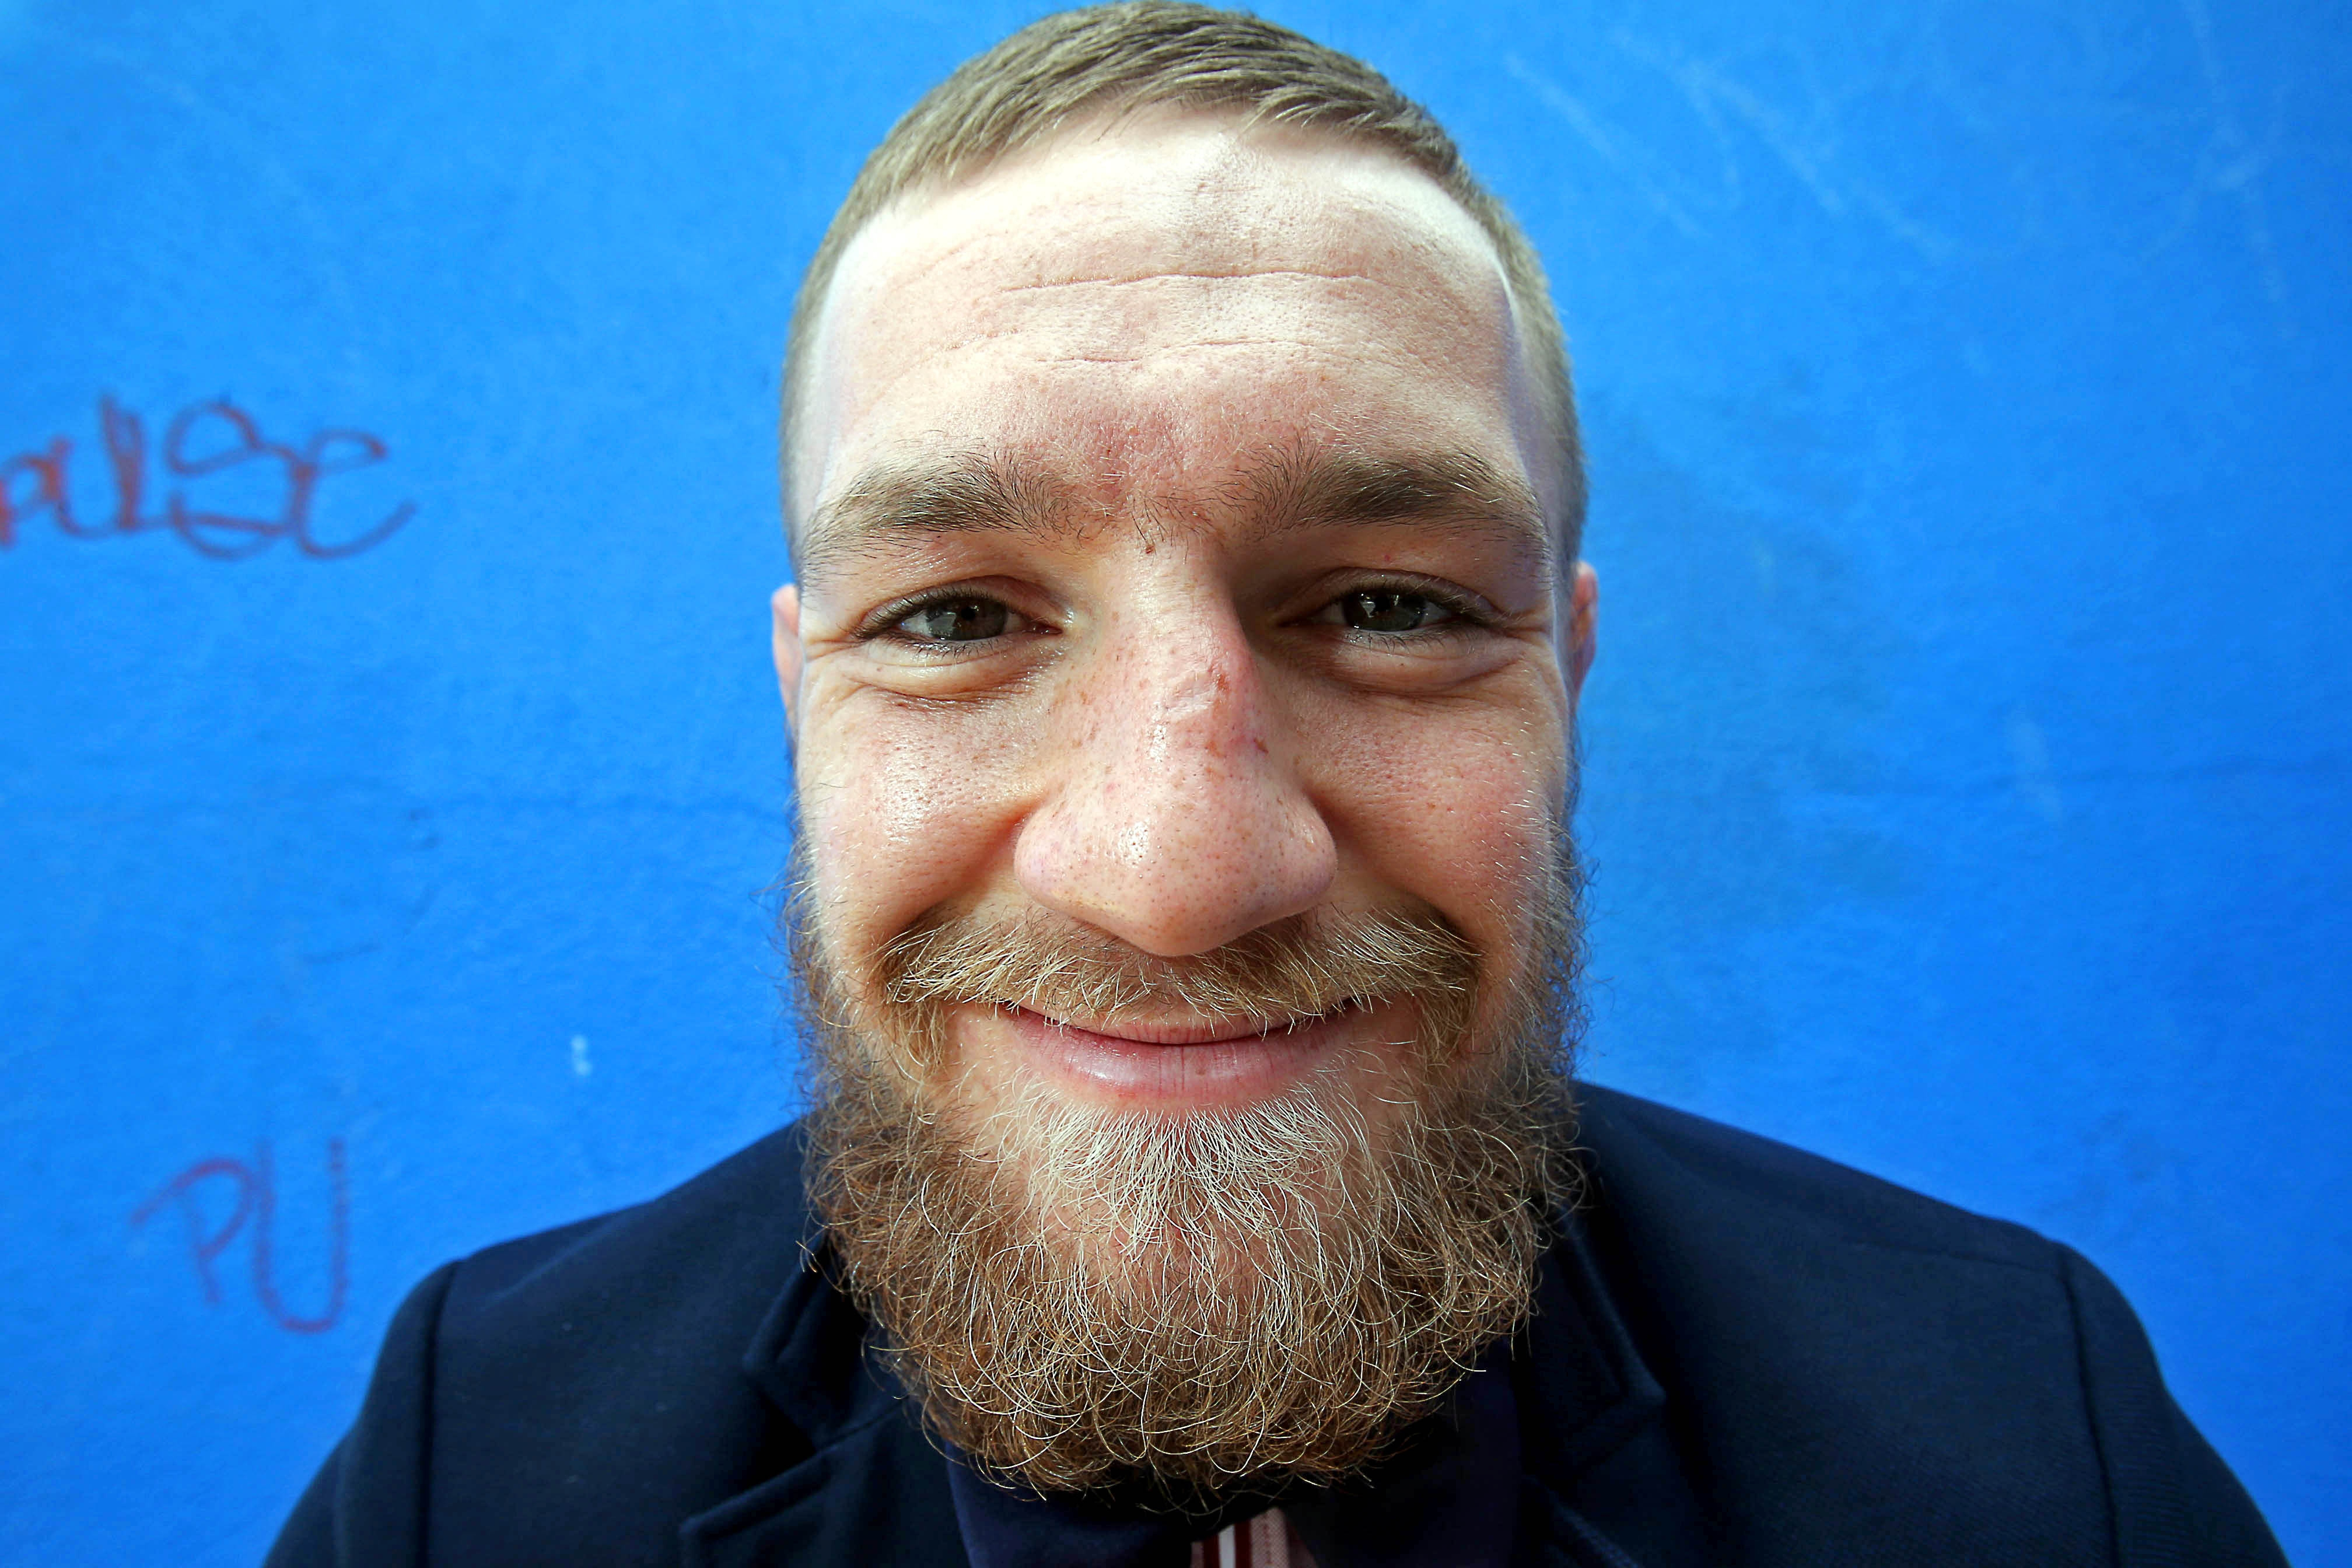 Hd wallpaper ufc - Conor Mcgregor Hd Wallpapers Free Download In High Quality